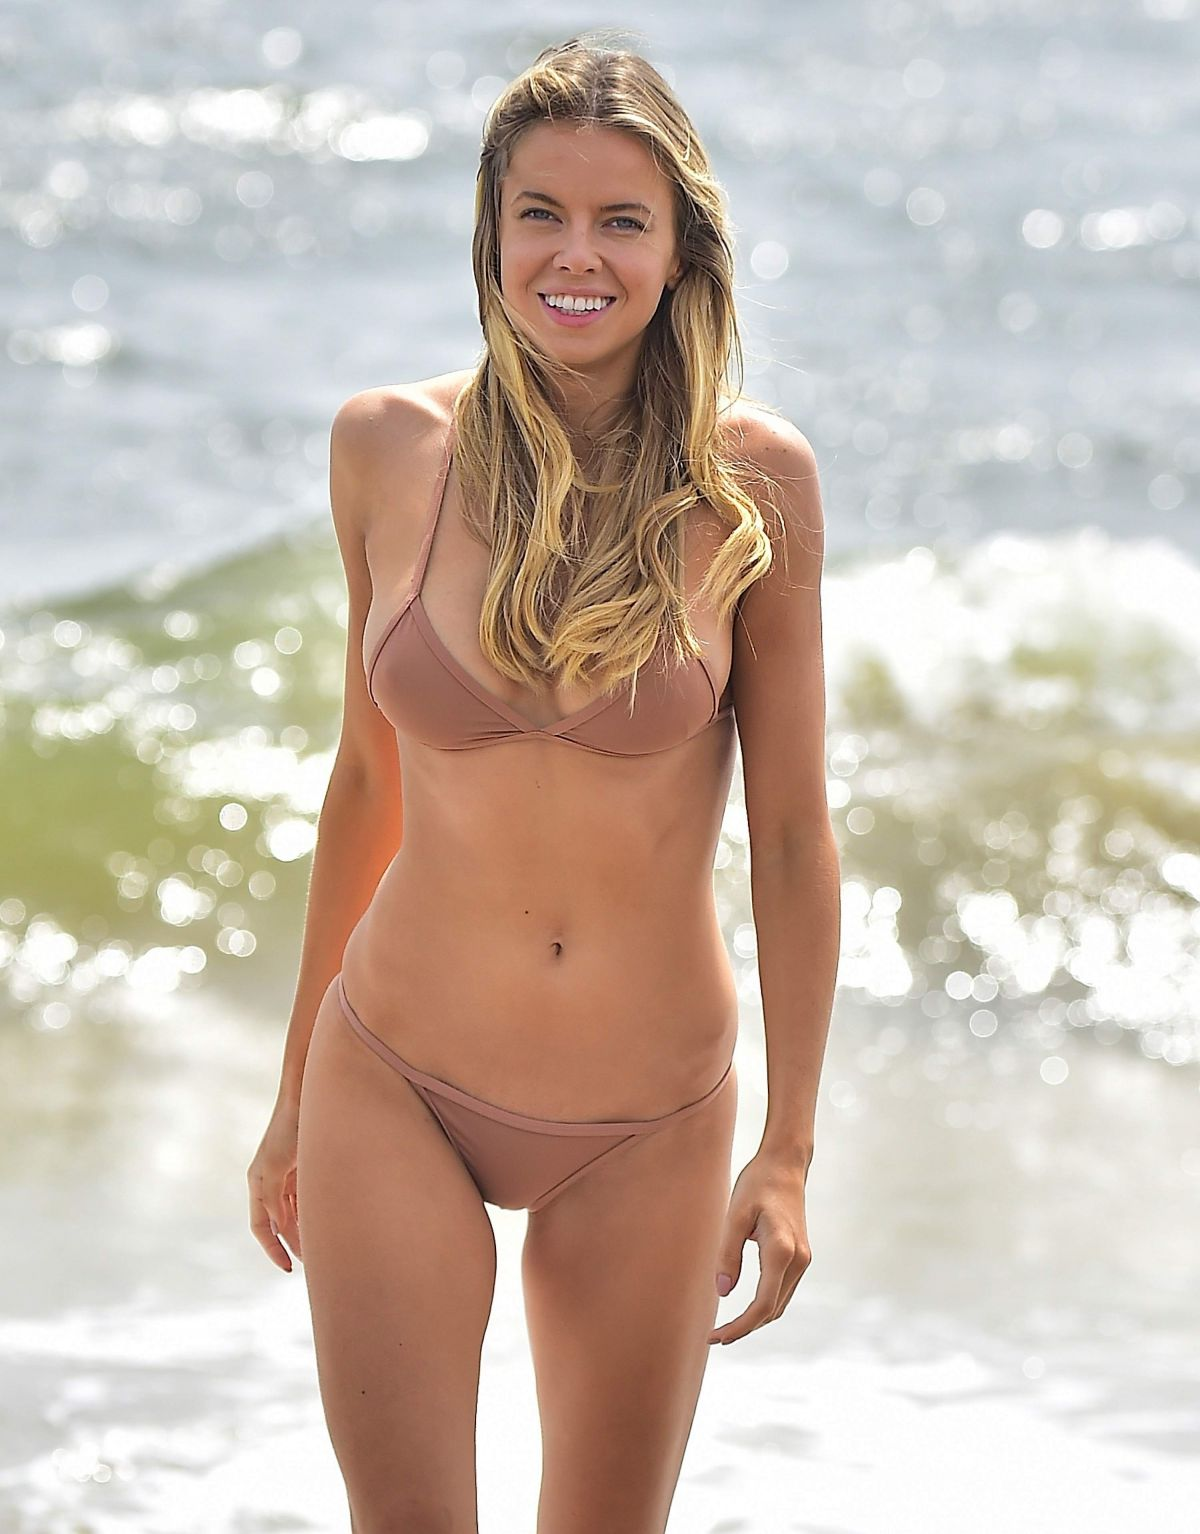 Louisa Warwick On the Beach During a Photoshoot in The Hamptons